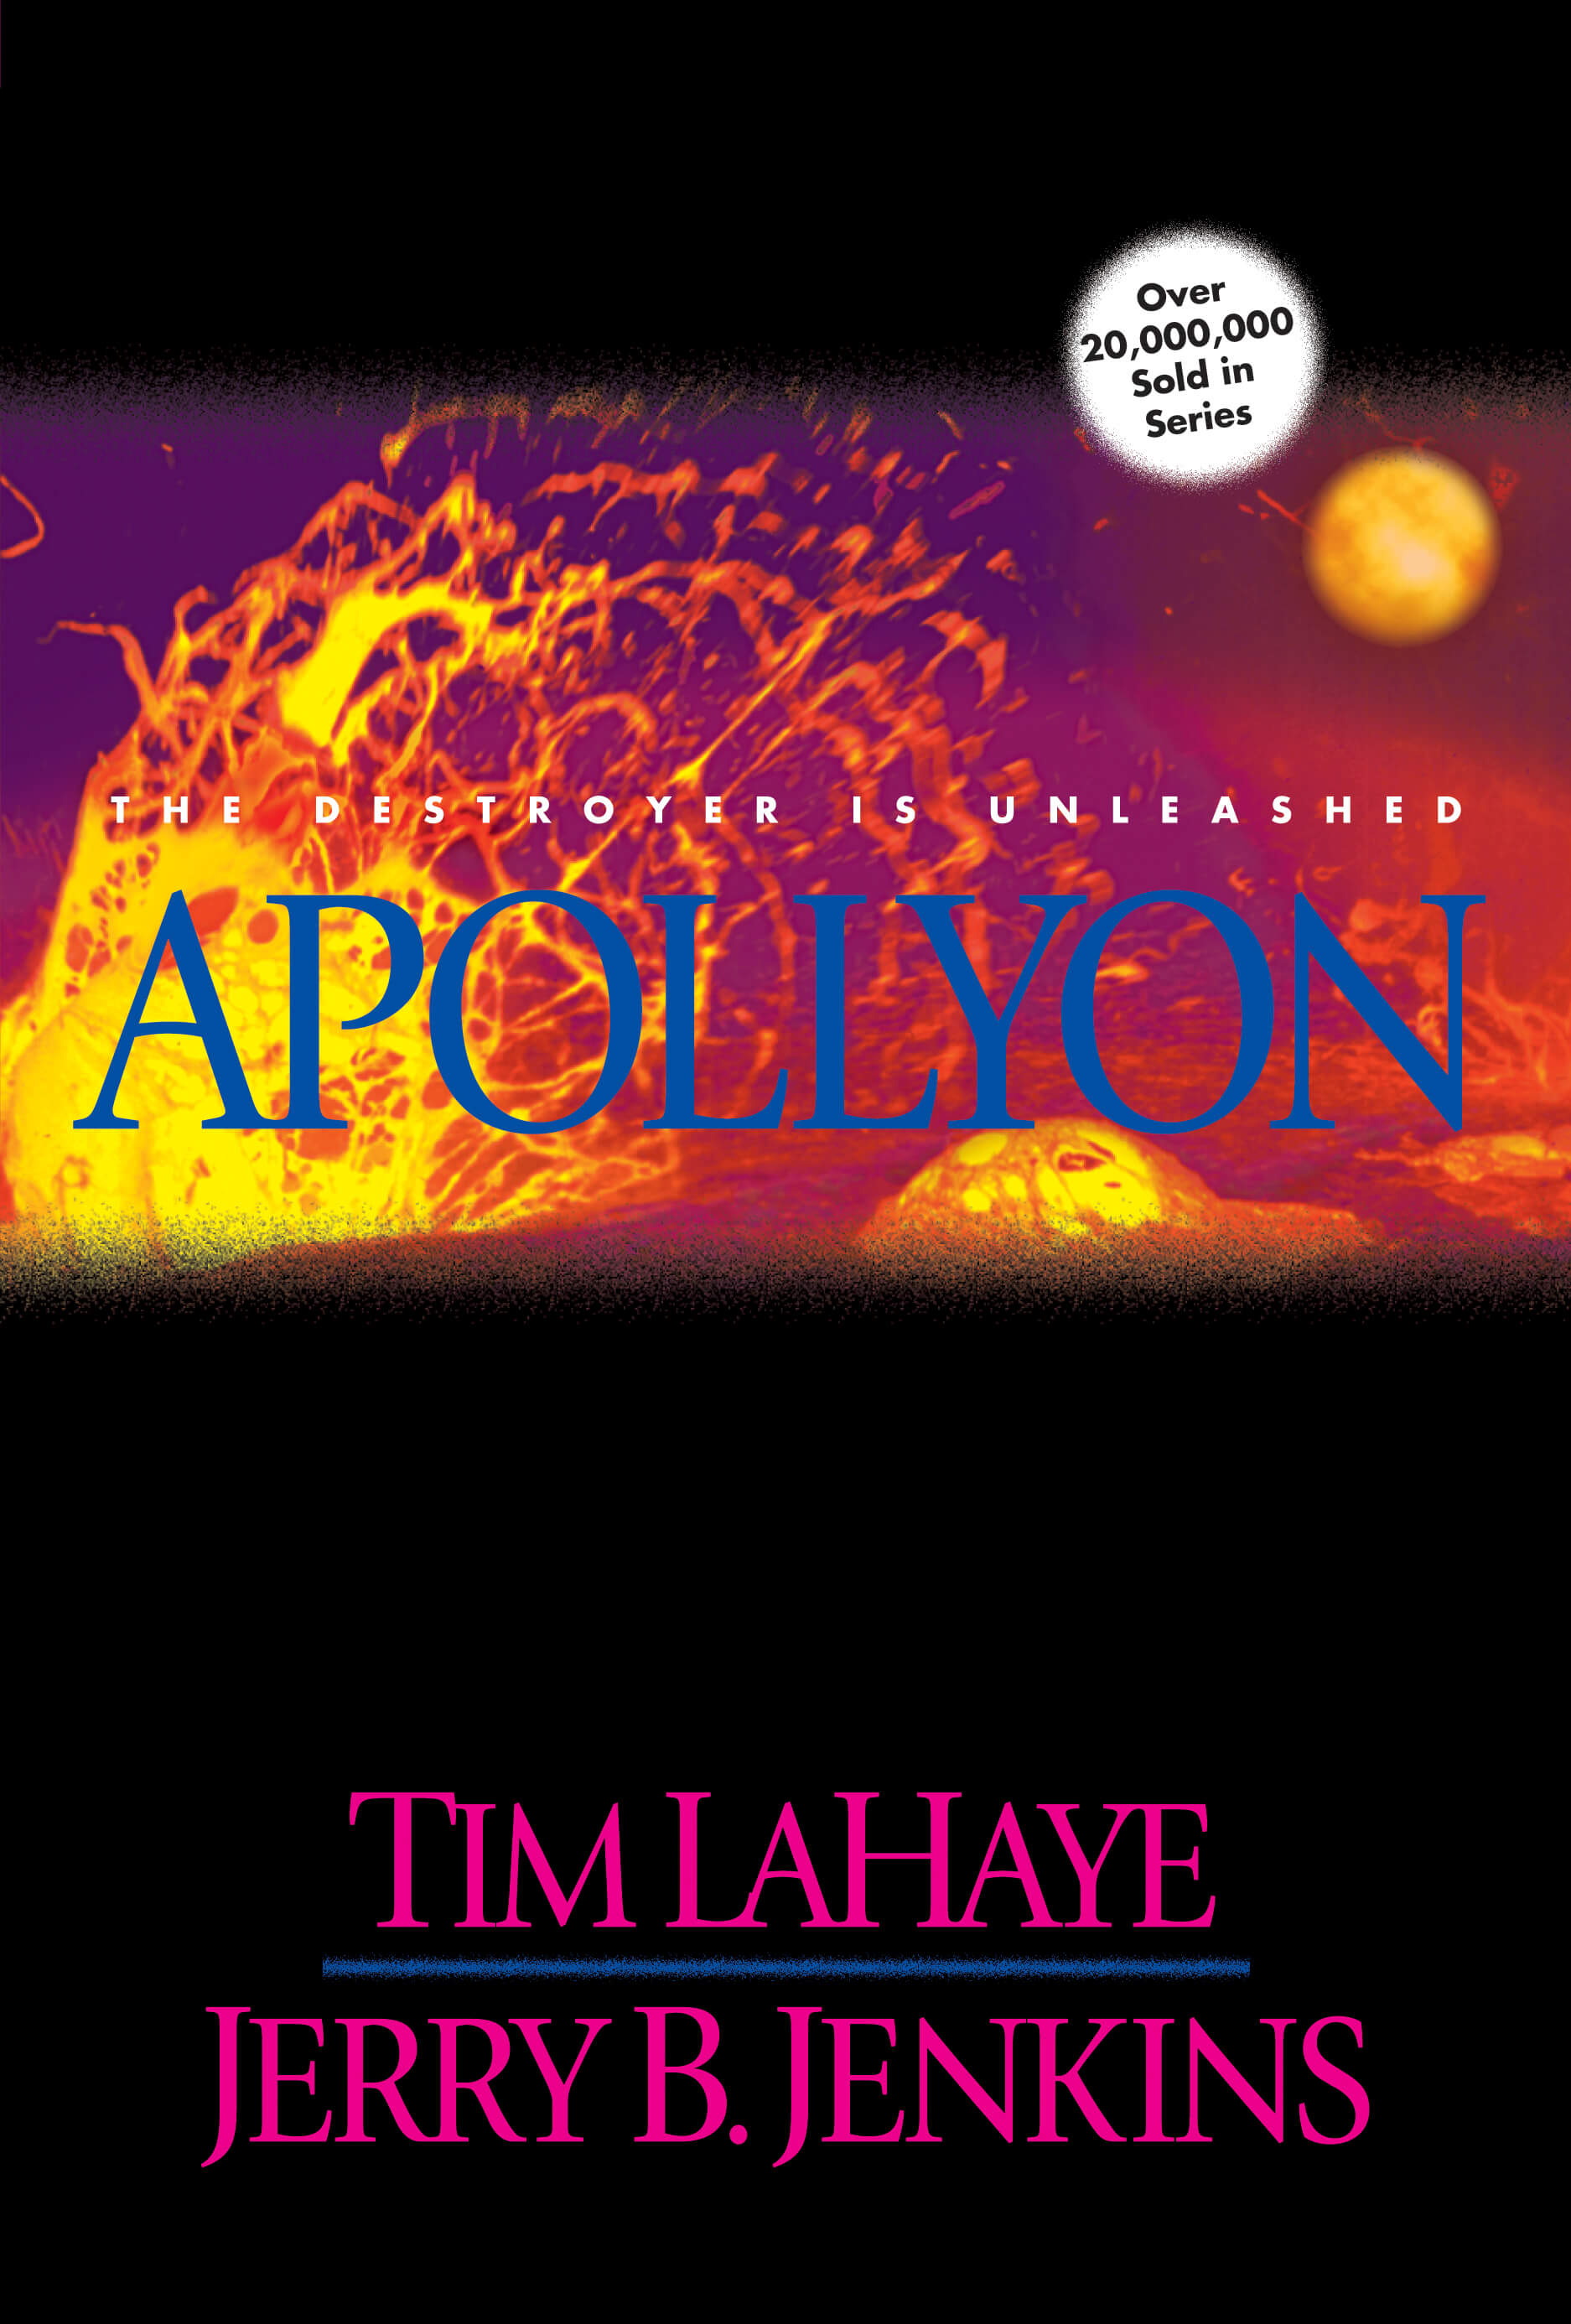 Apollyon Book by Jerry B. Jenkins and Tim LaHaye